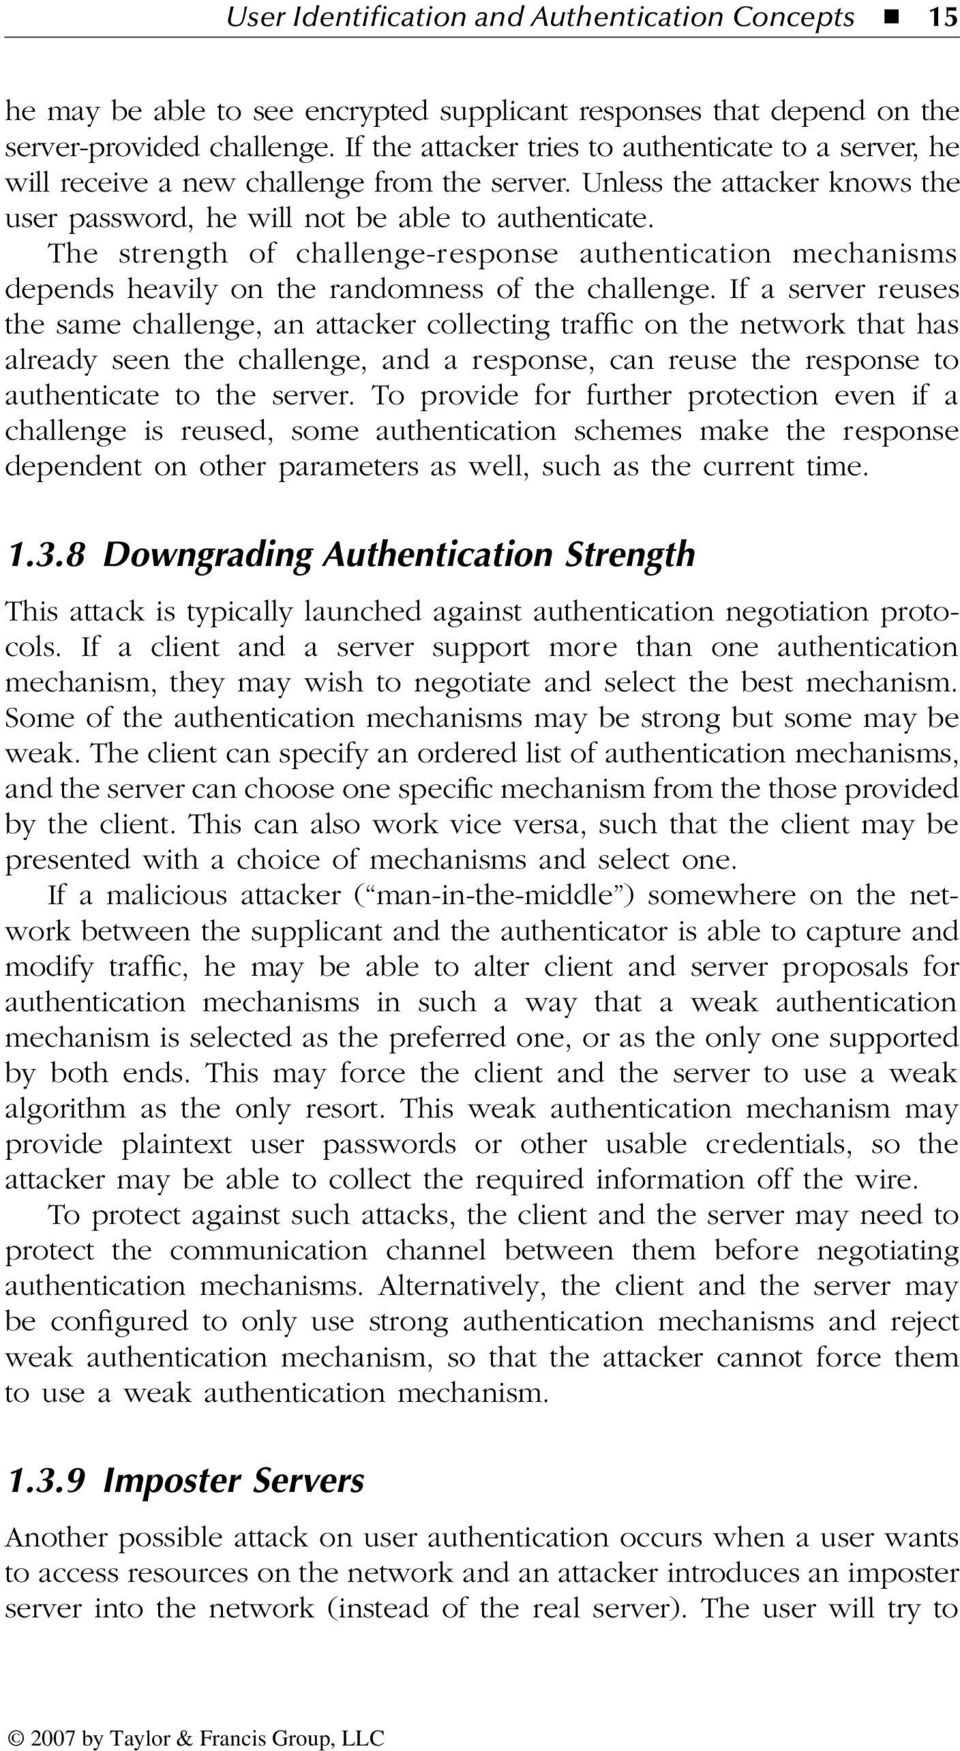 The strength of challenge-response authentication mechanisms depends heavily on the randomness of the challenge.